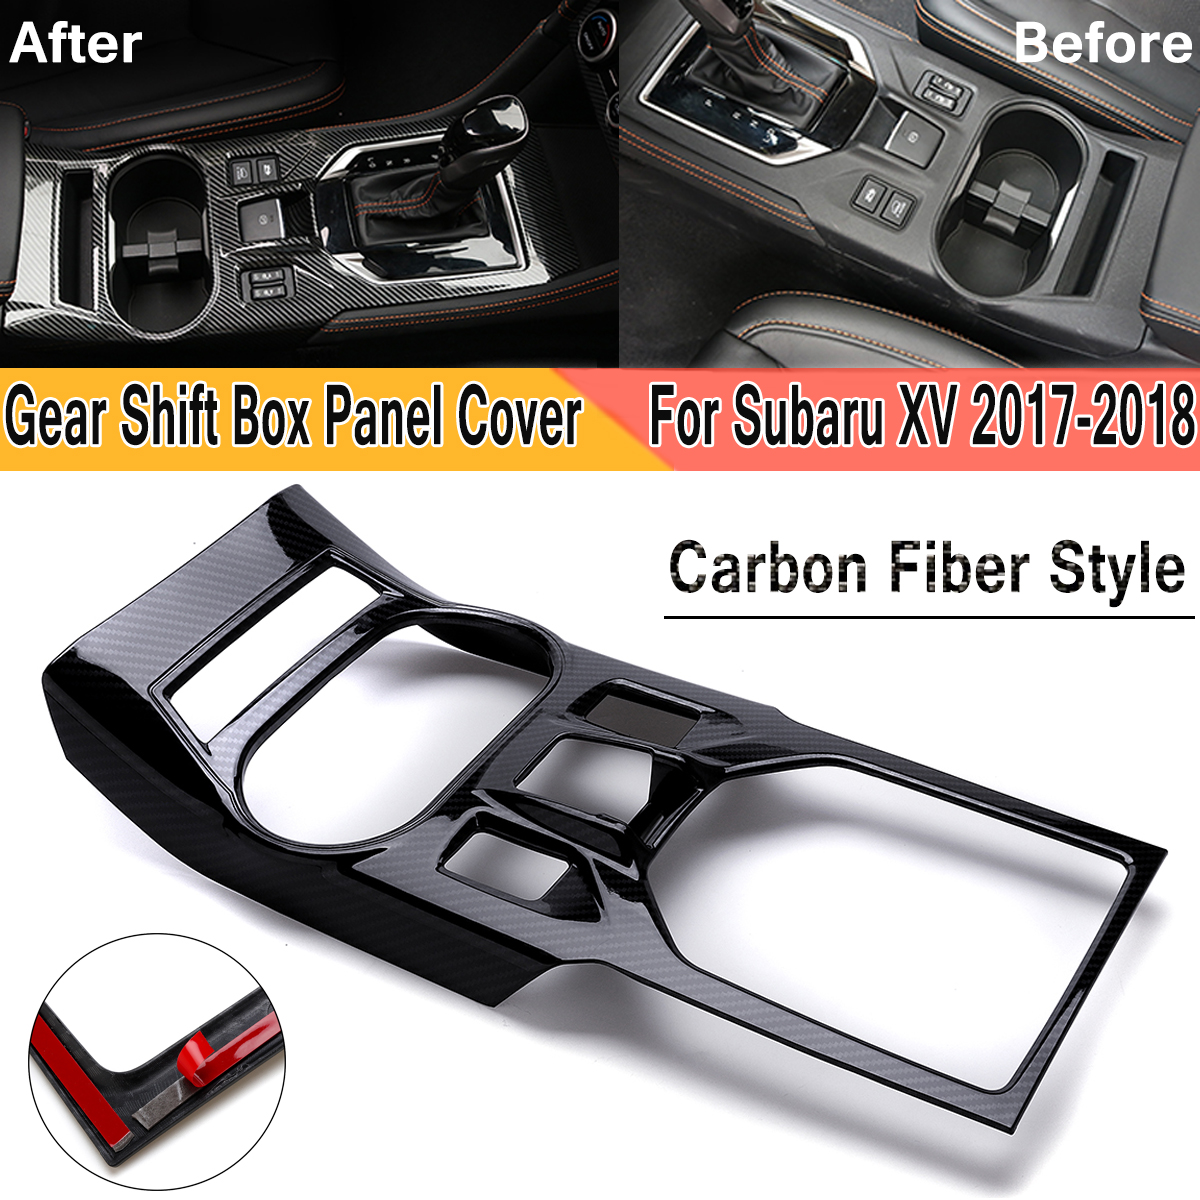 Carbon Fiber Style ABS Interior Gear Shift font b Box b font Panel Overlay Cover Trim